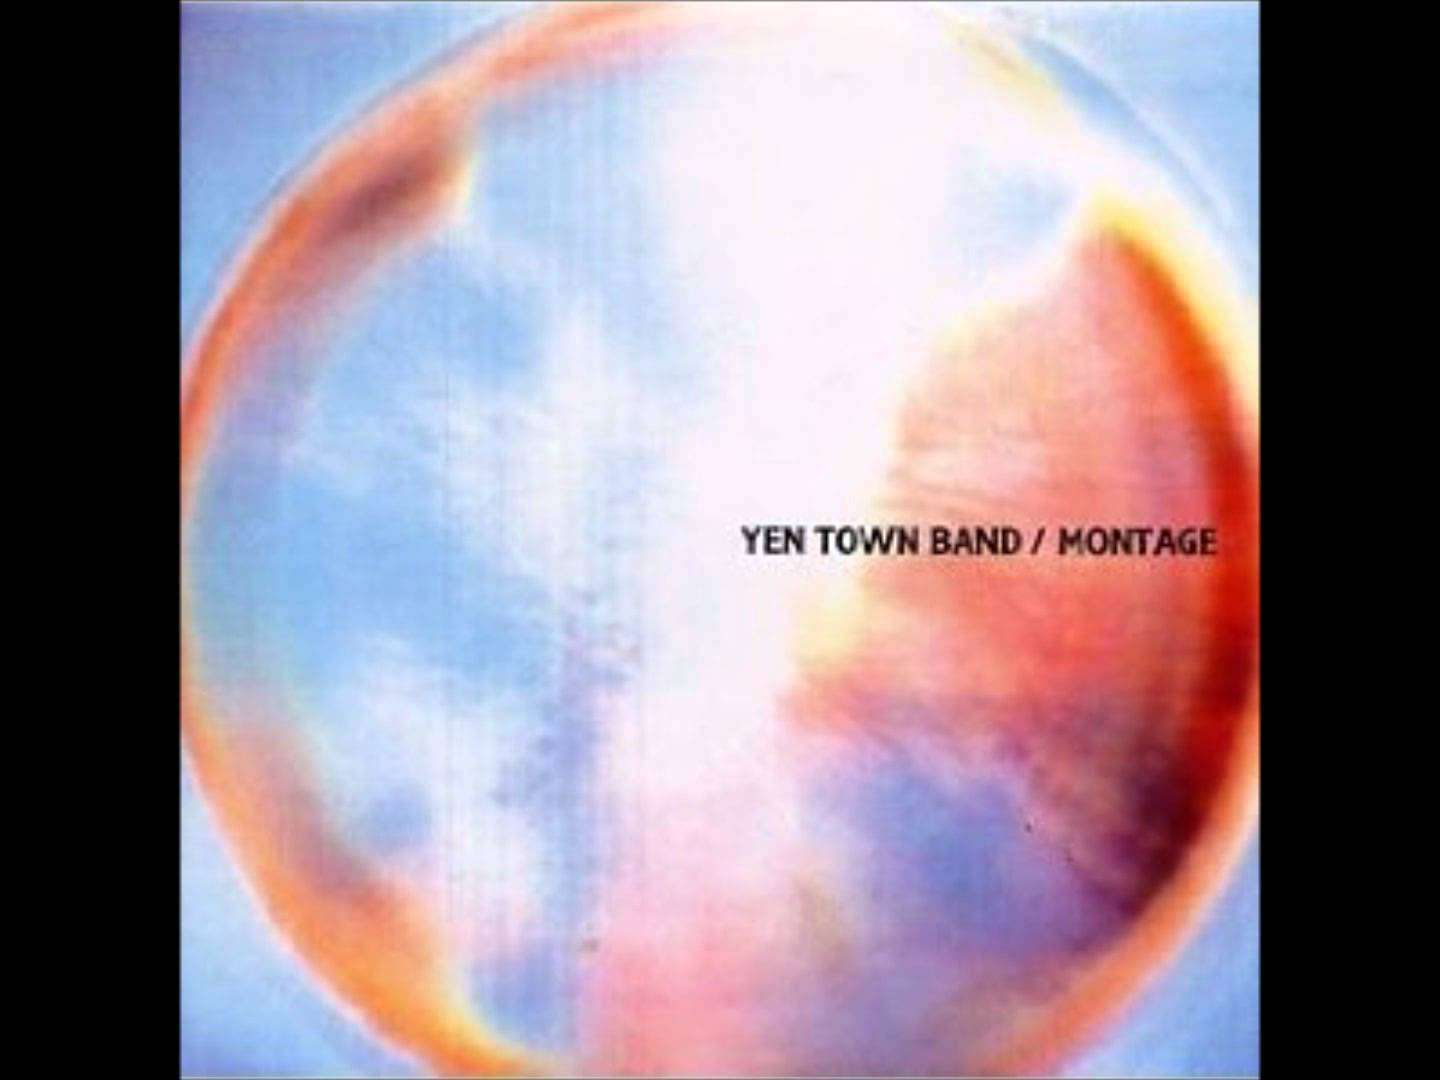 YEN TOWN BAND with Chara -My Way- - YouTube